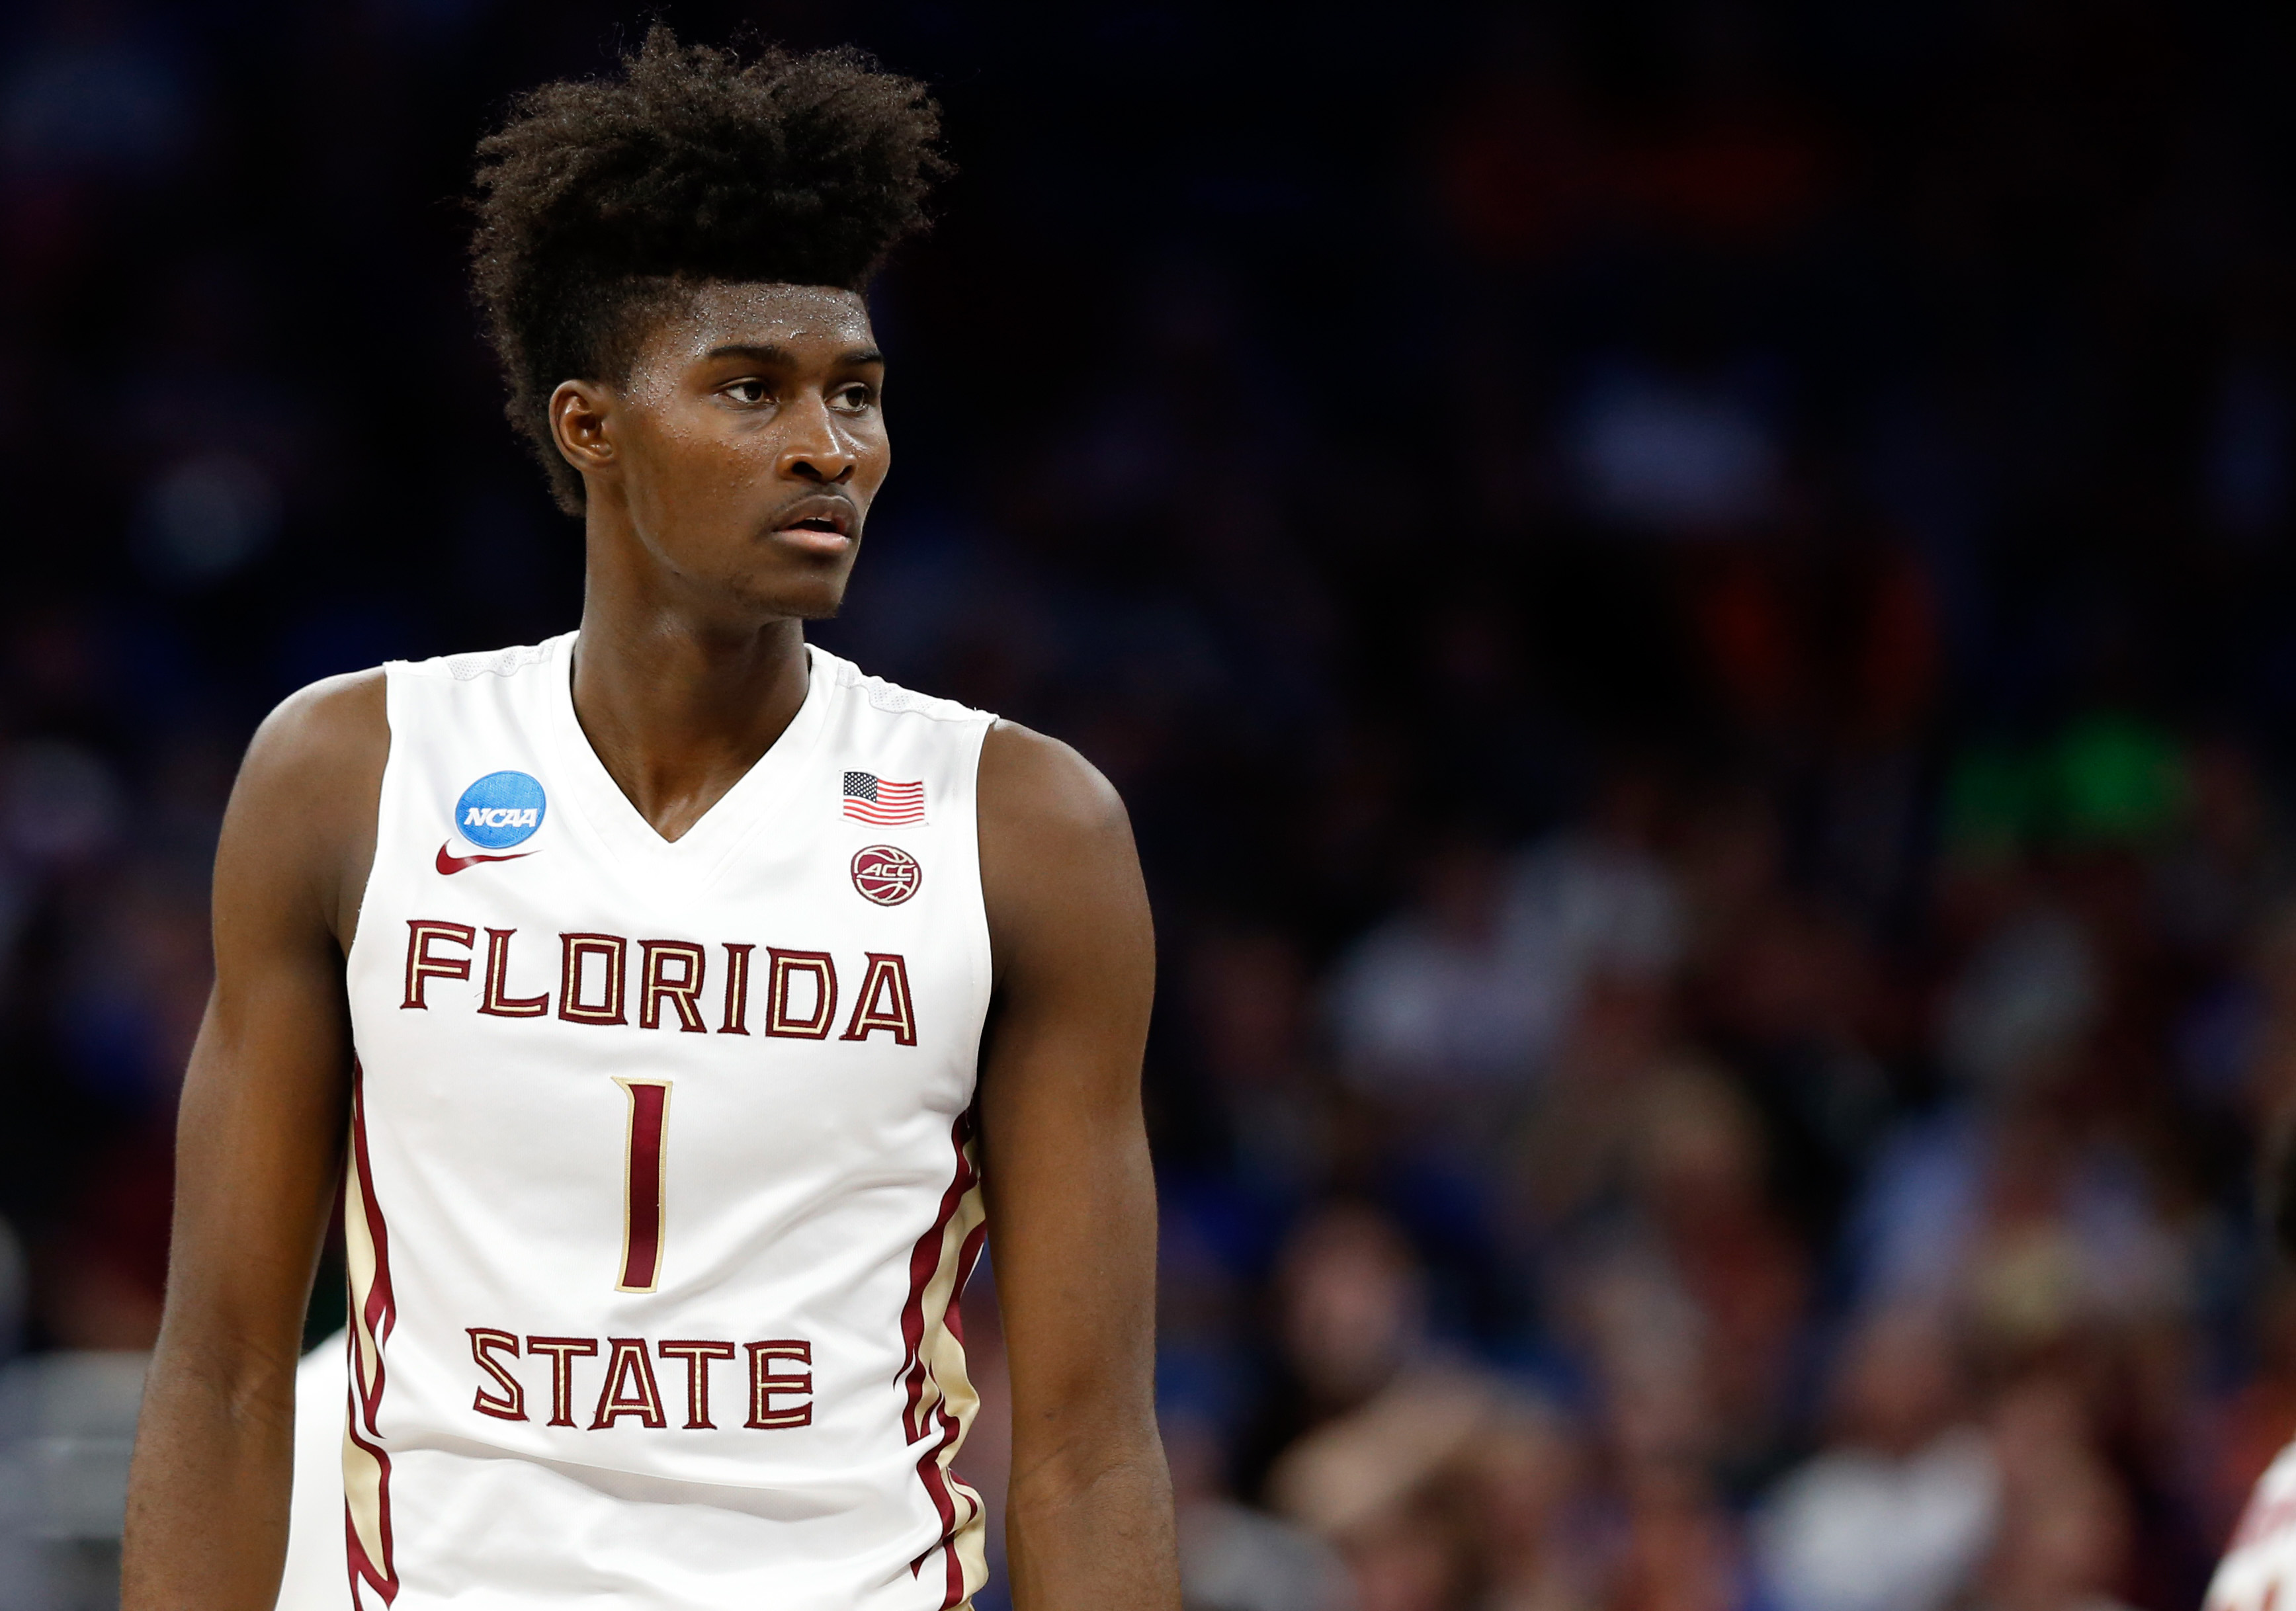 9990511-ncaa-basketball-ncaa-tournament-second-round-florida-state-vs-xavier